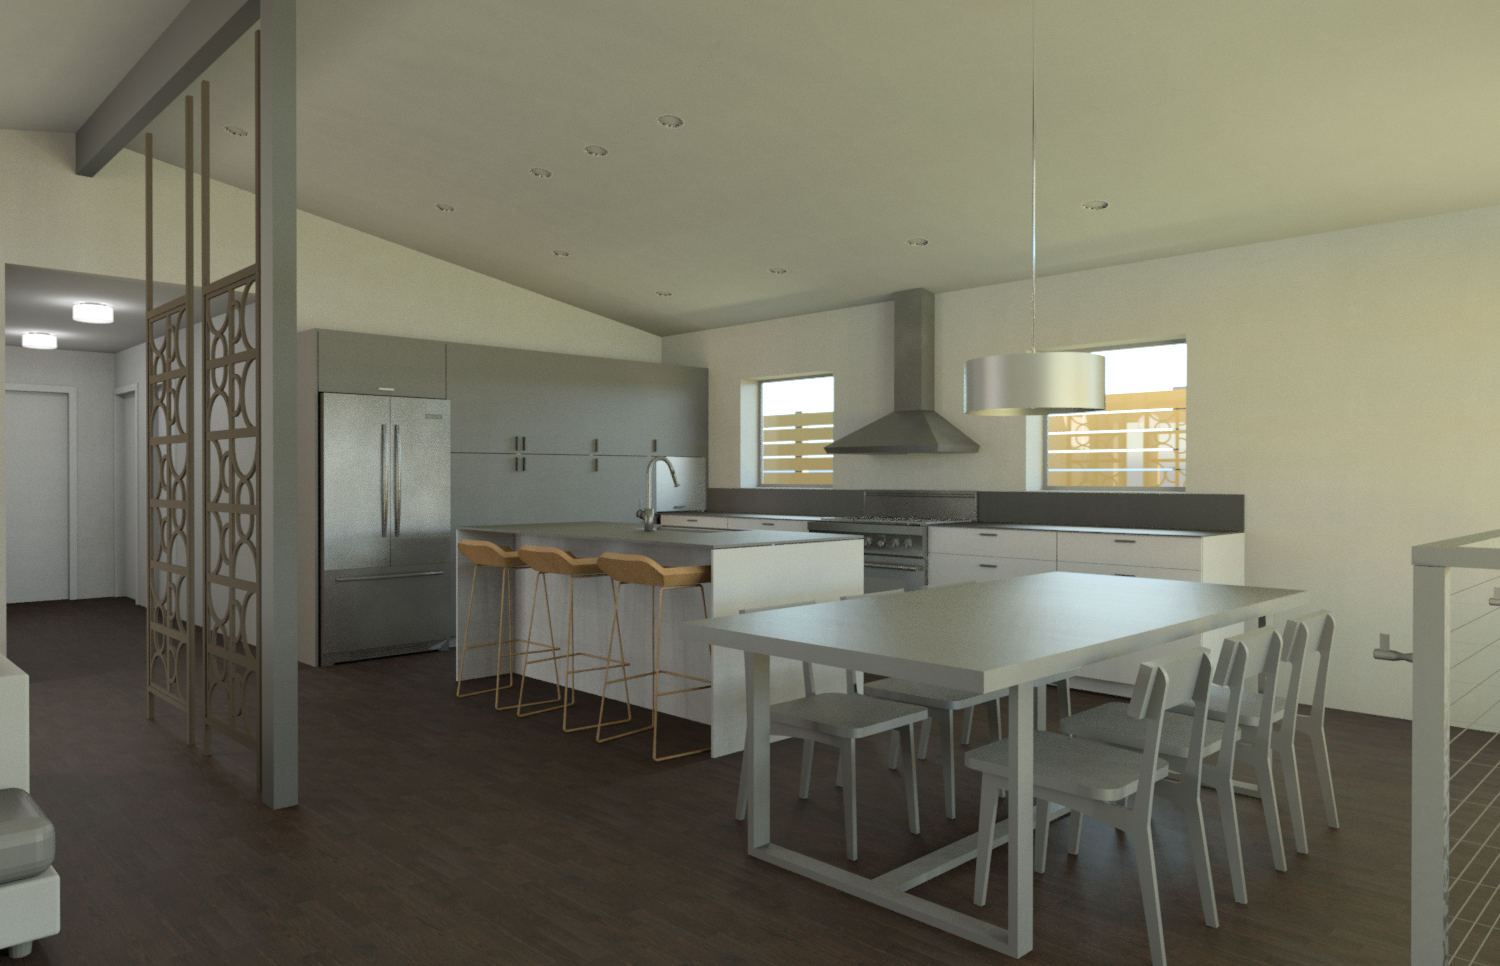 Dexter_Way.rvt_2013-Sep-19_06-15-31PM-000_3D_View_-_Dining_to_Kitchen.png